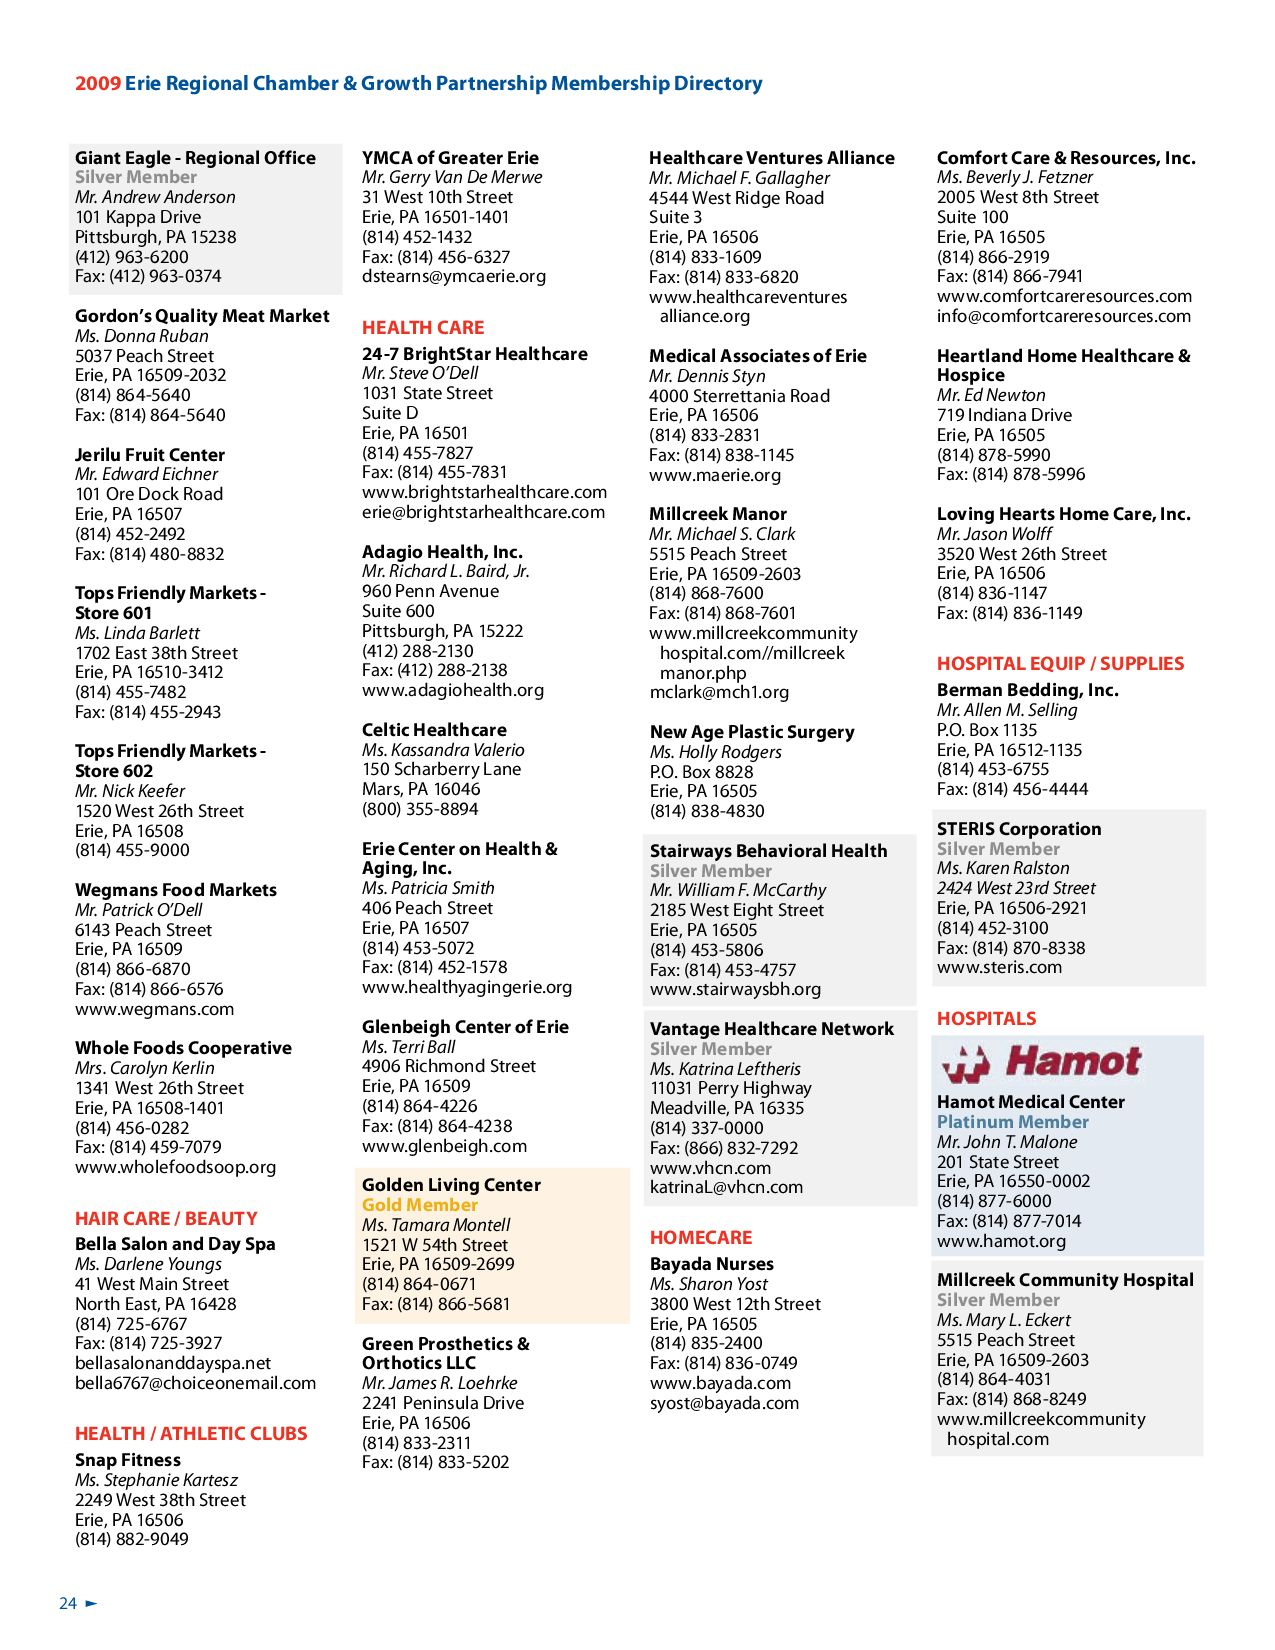 2009 Membership Directory and Buyer's Guide by Erie Regional